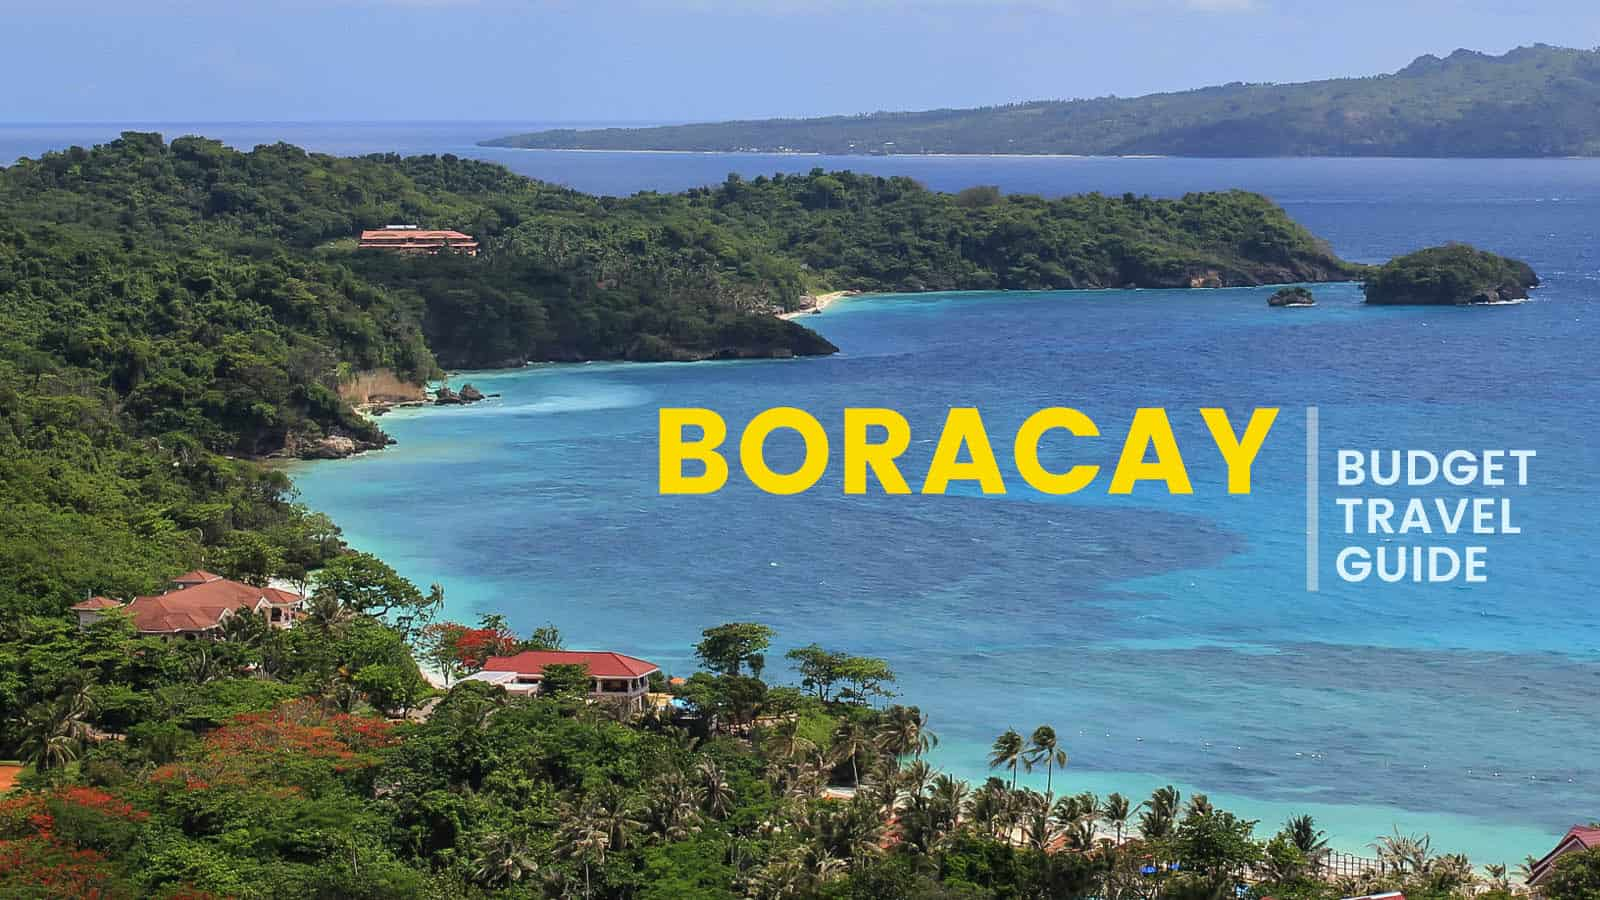 BORACAY: Budget Travel Guide